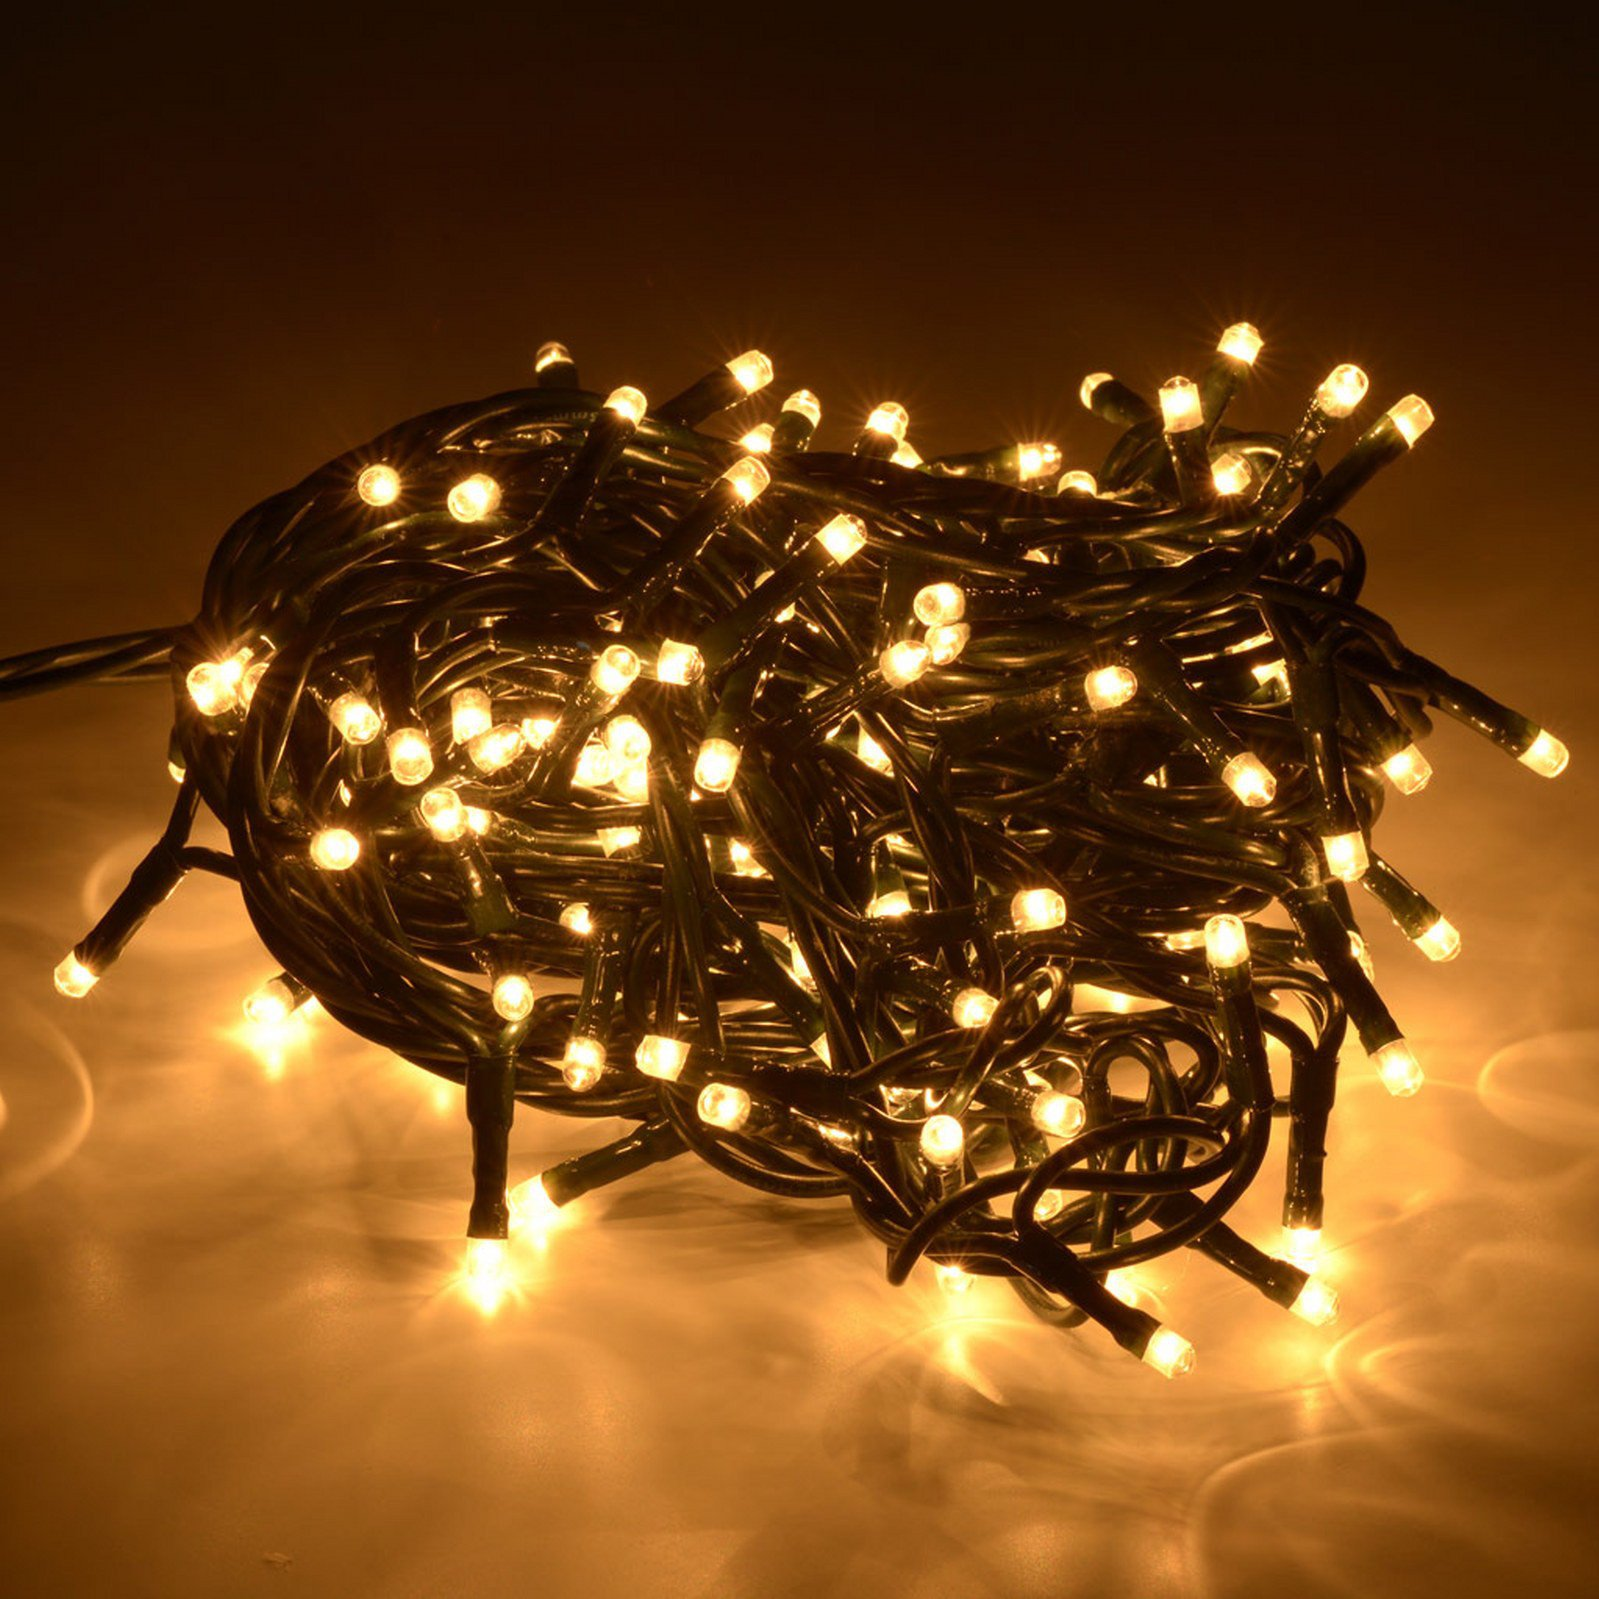 Luci natale 100 led per esterno luce calda casa mia shopping for Luci a led per interni casa